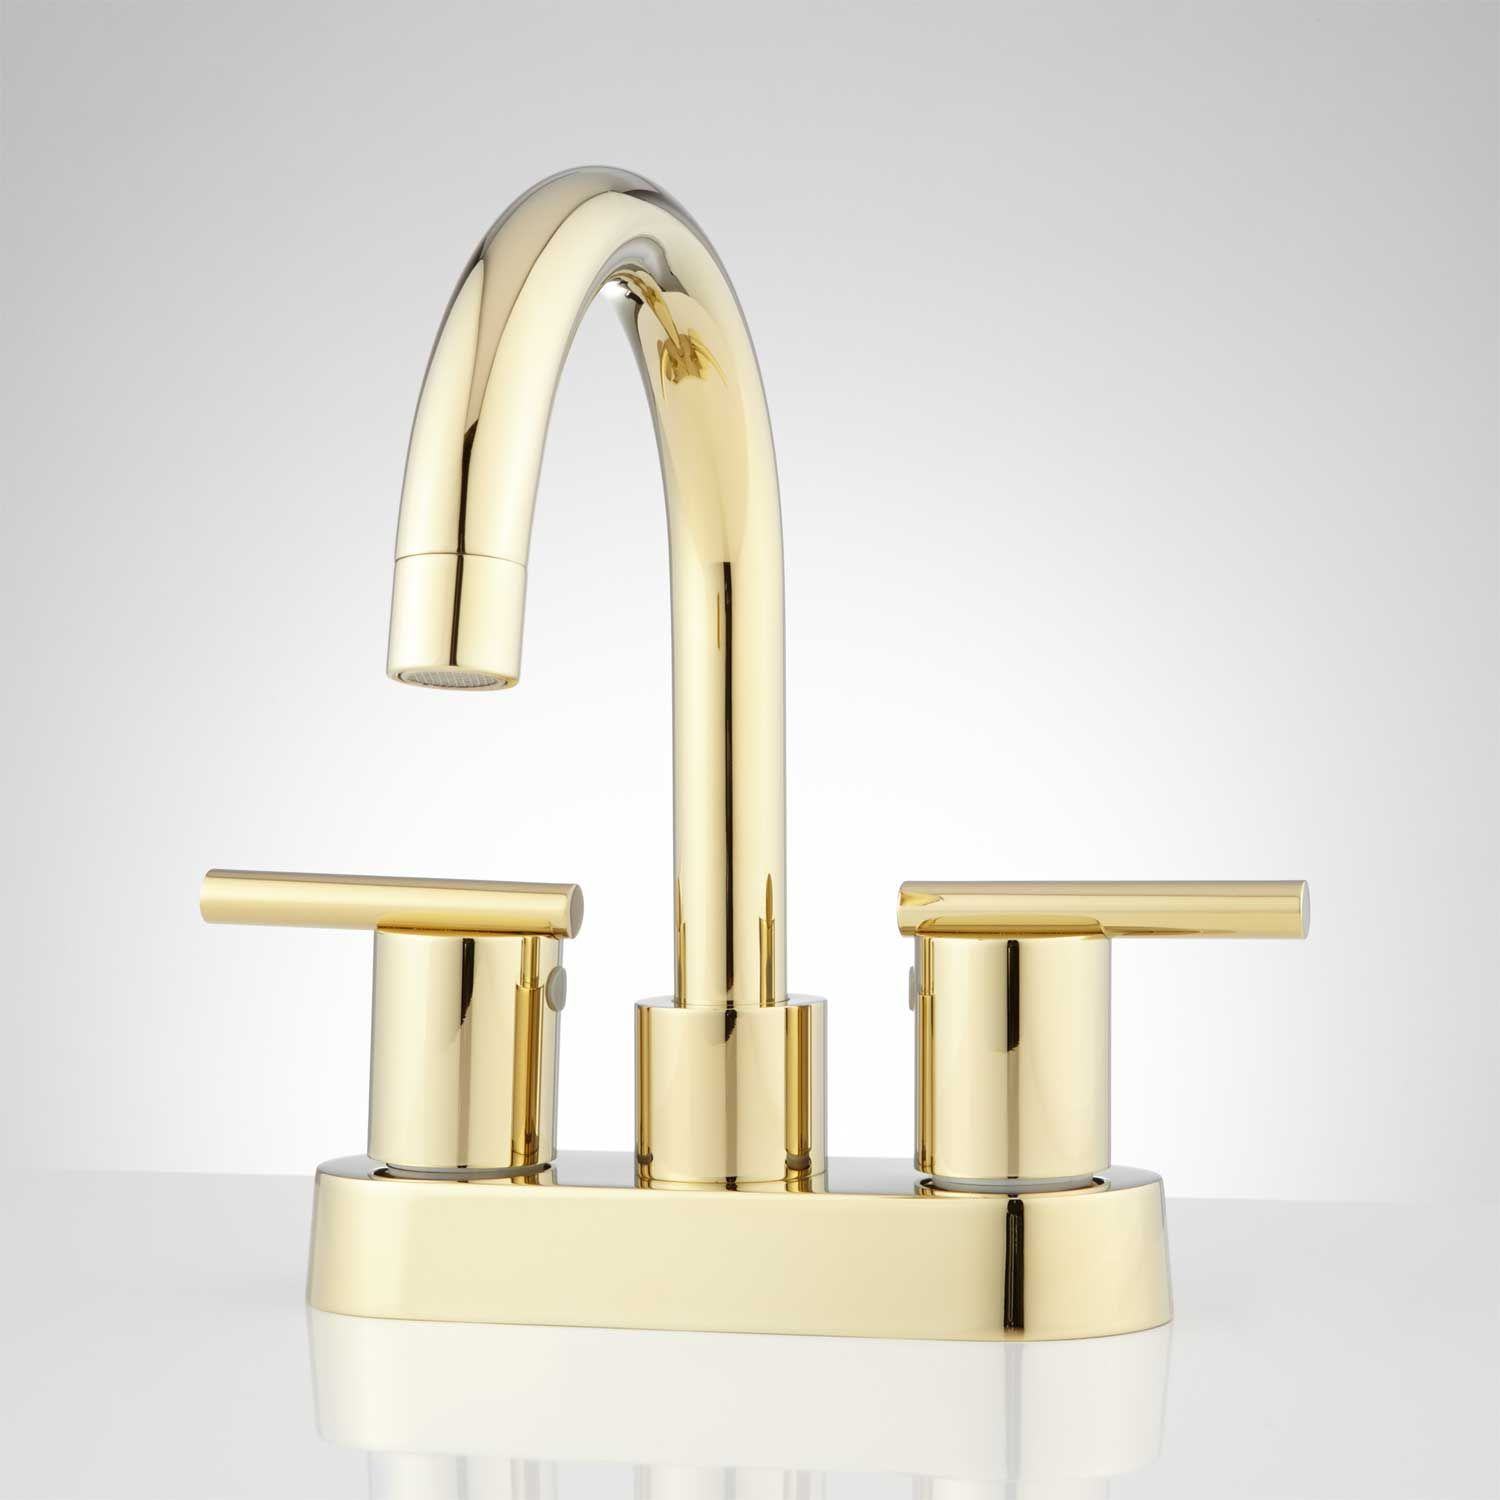 Lindo Centerset Bathroom Faucet | Faucet and Polished brass